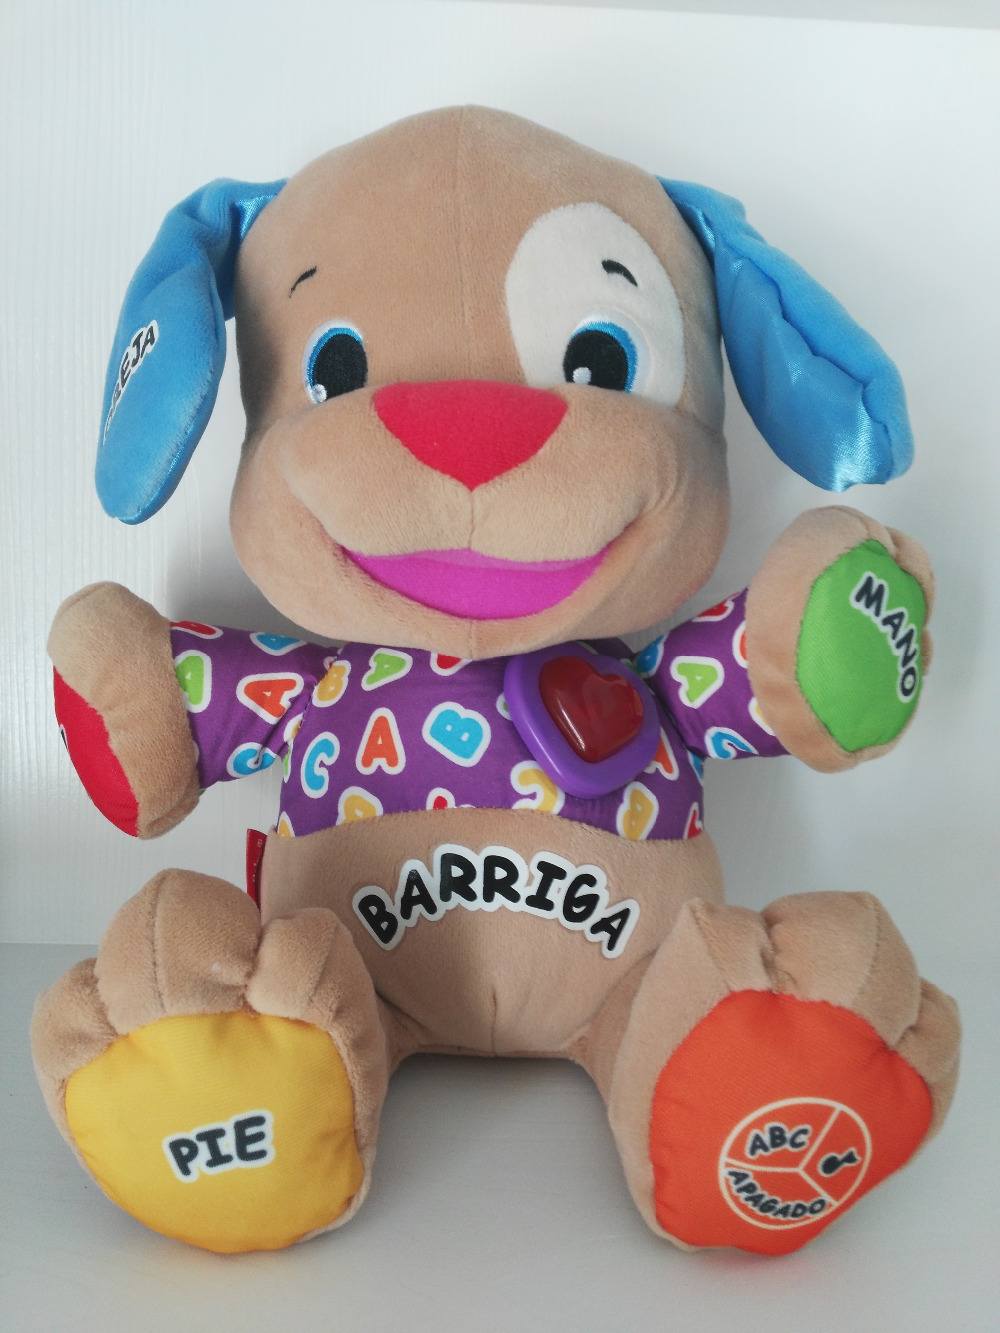 Spanish Speaking Singing Dog Toy Musical Educational Baby Boy Girl Toys Infant Stuffed Doll